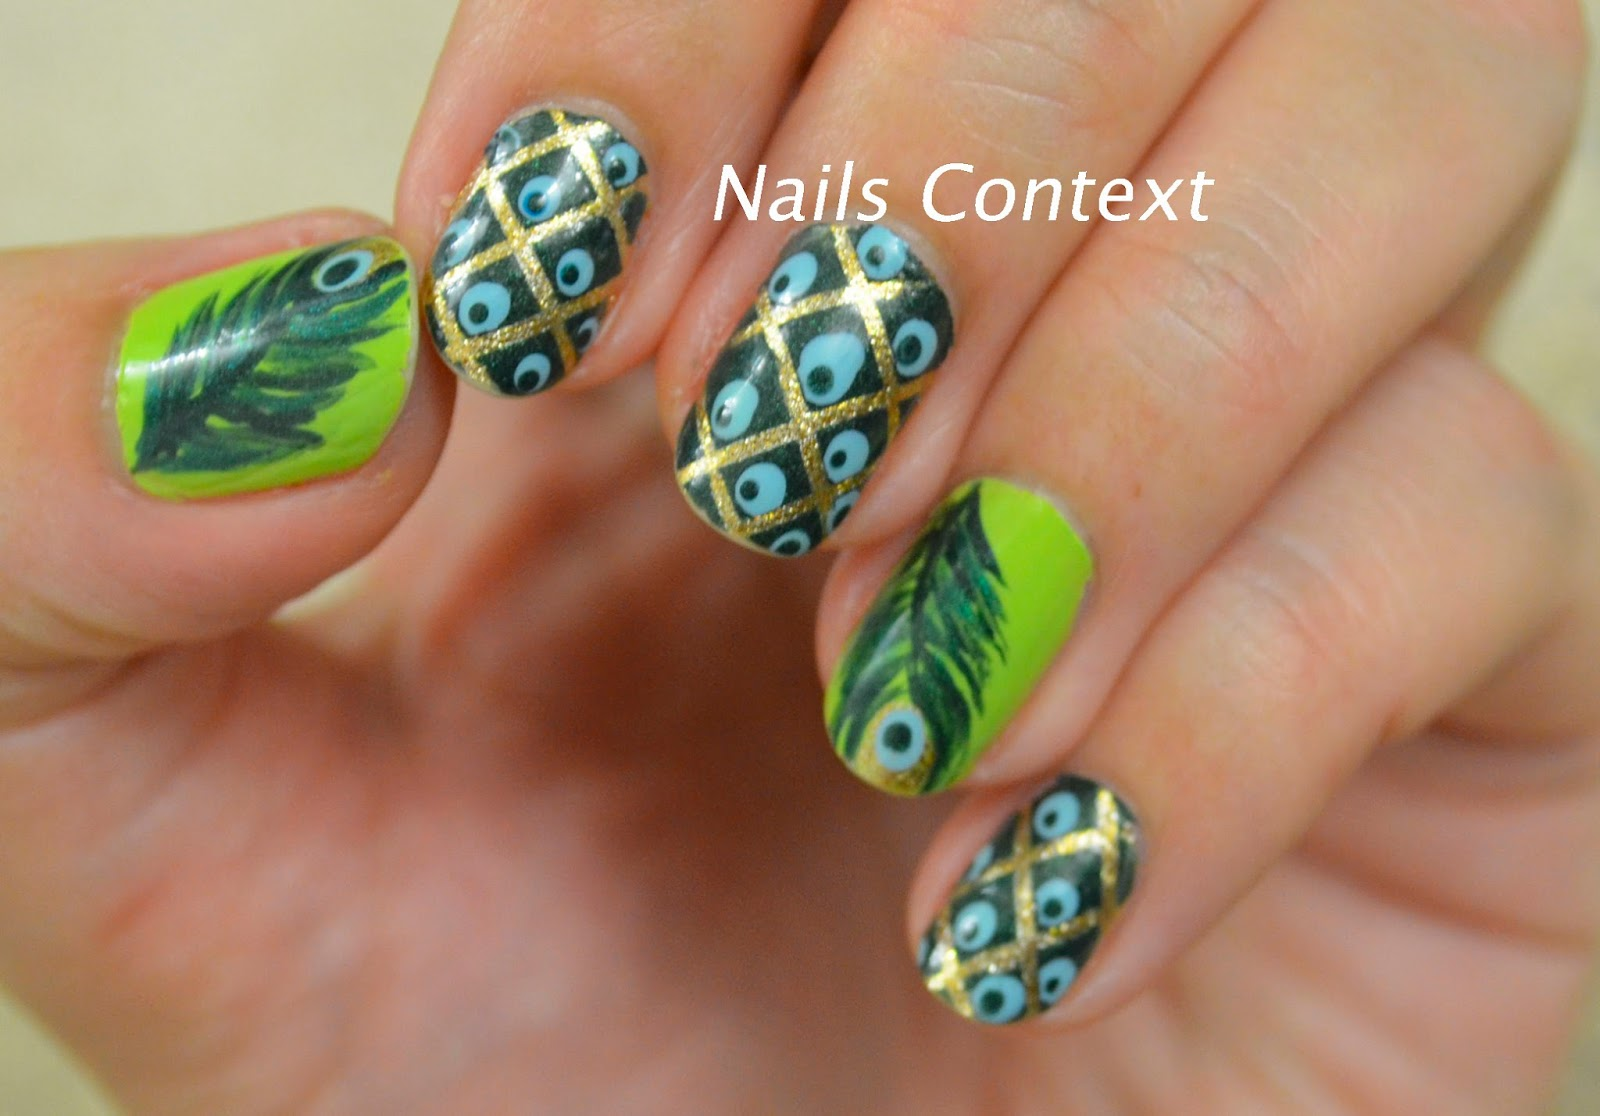 Nails Context: Peacock Nails